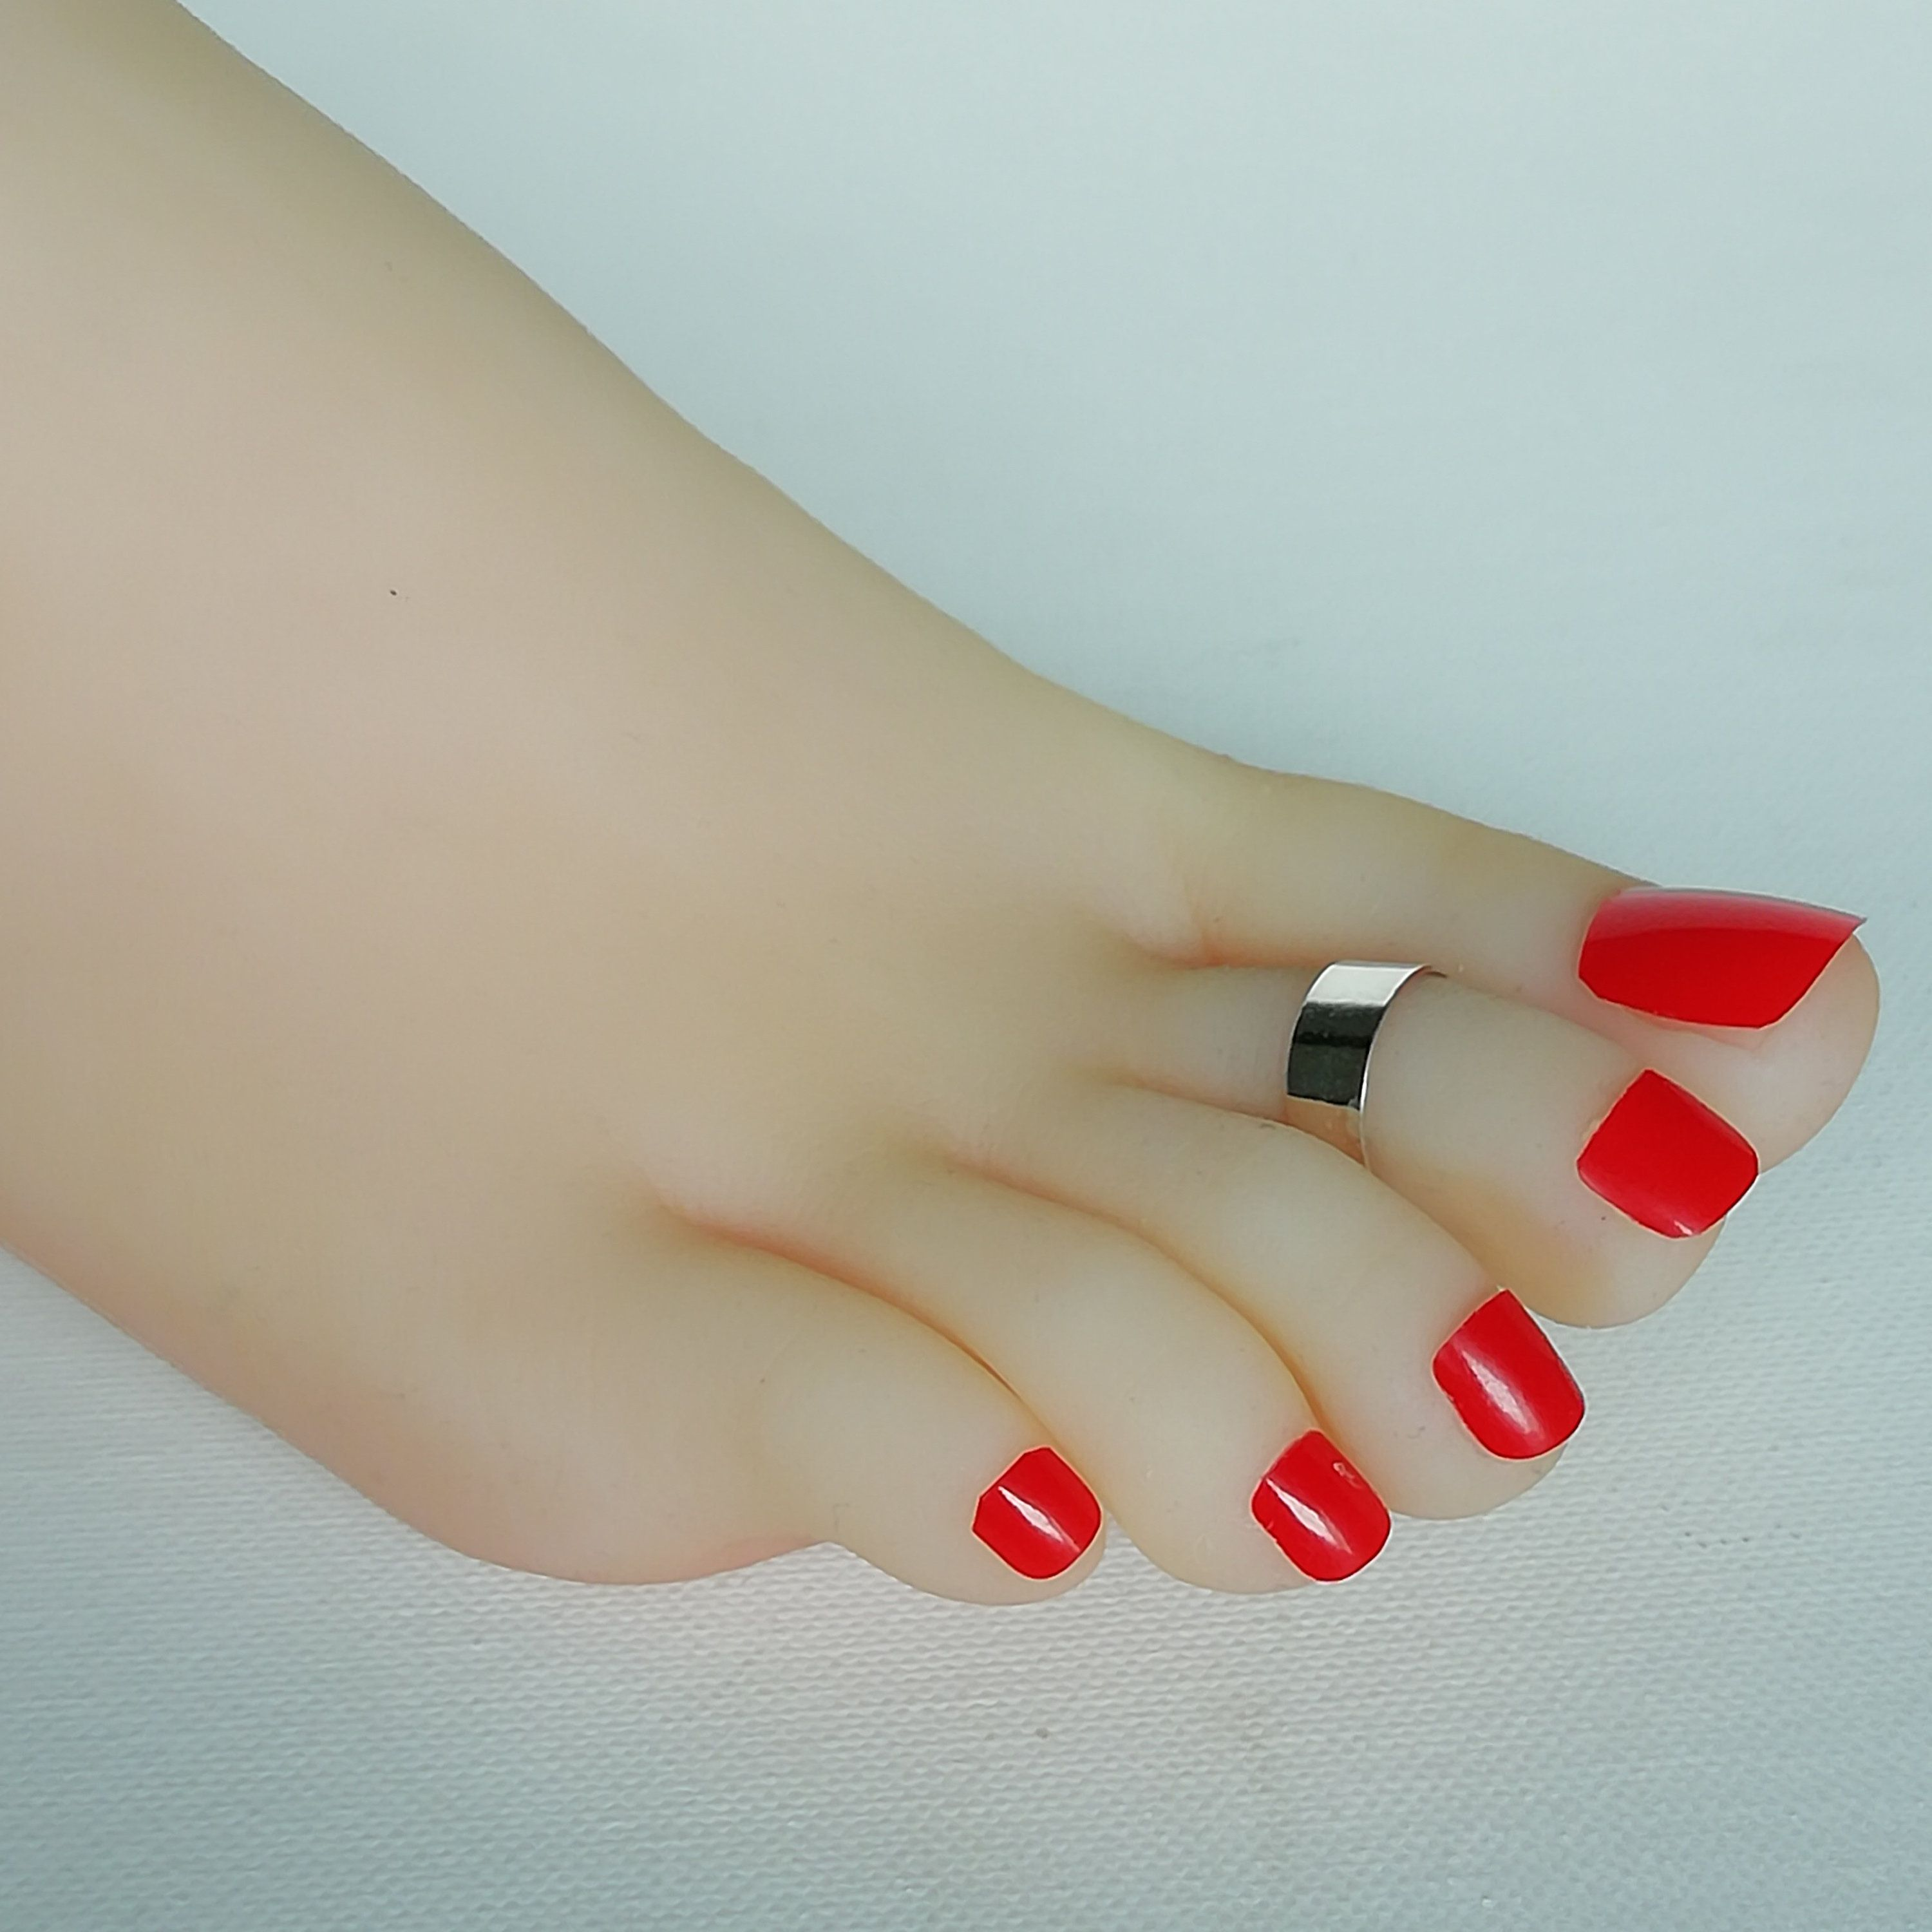 Silver Toe Band 6mm Toe Band Minimalist Toe Ring Pretty Toe Ring Silver Body Jewelry Foot Jewelry Tac By Thesil In 2020 Pretty Toes Toe Band Cute Toe Nails